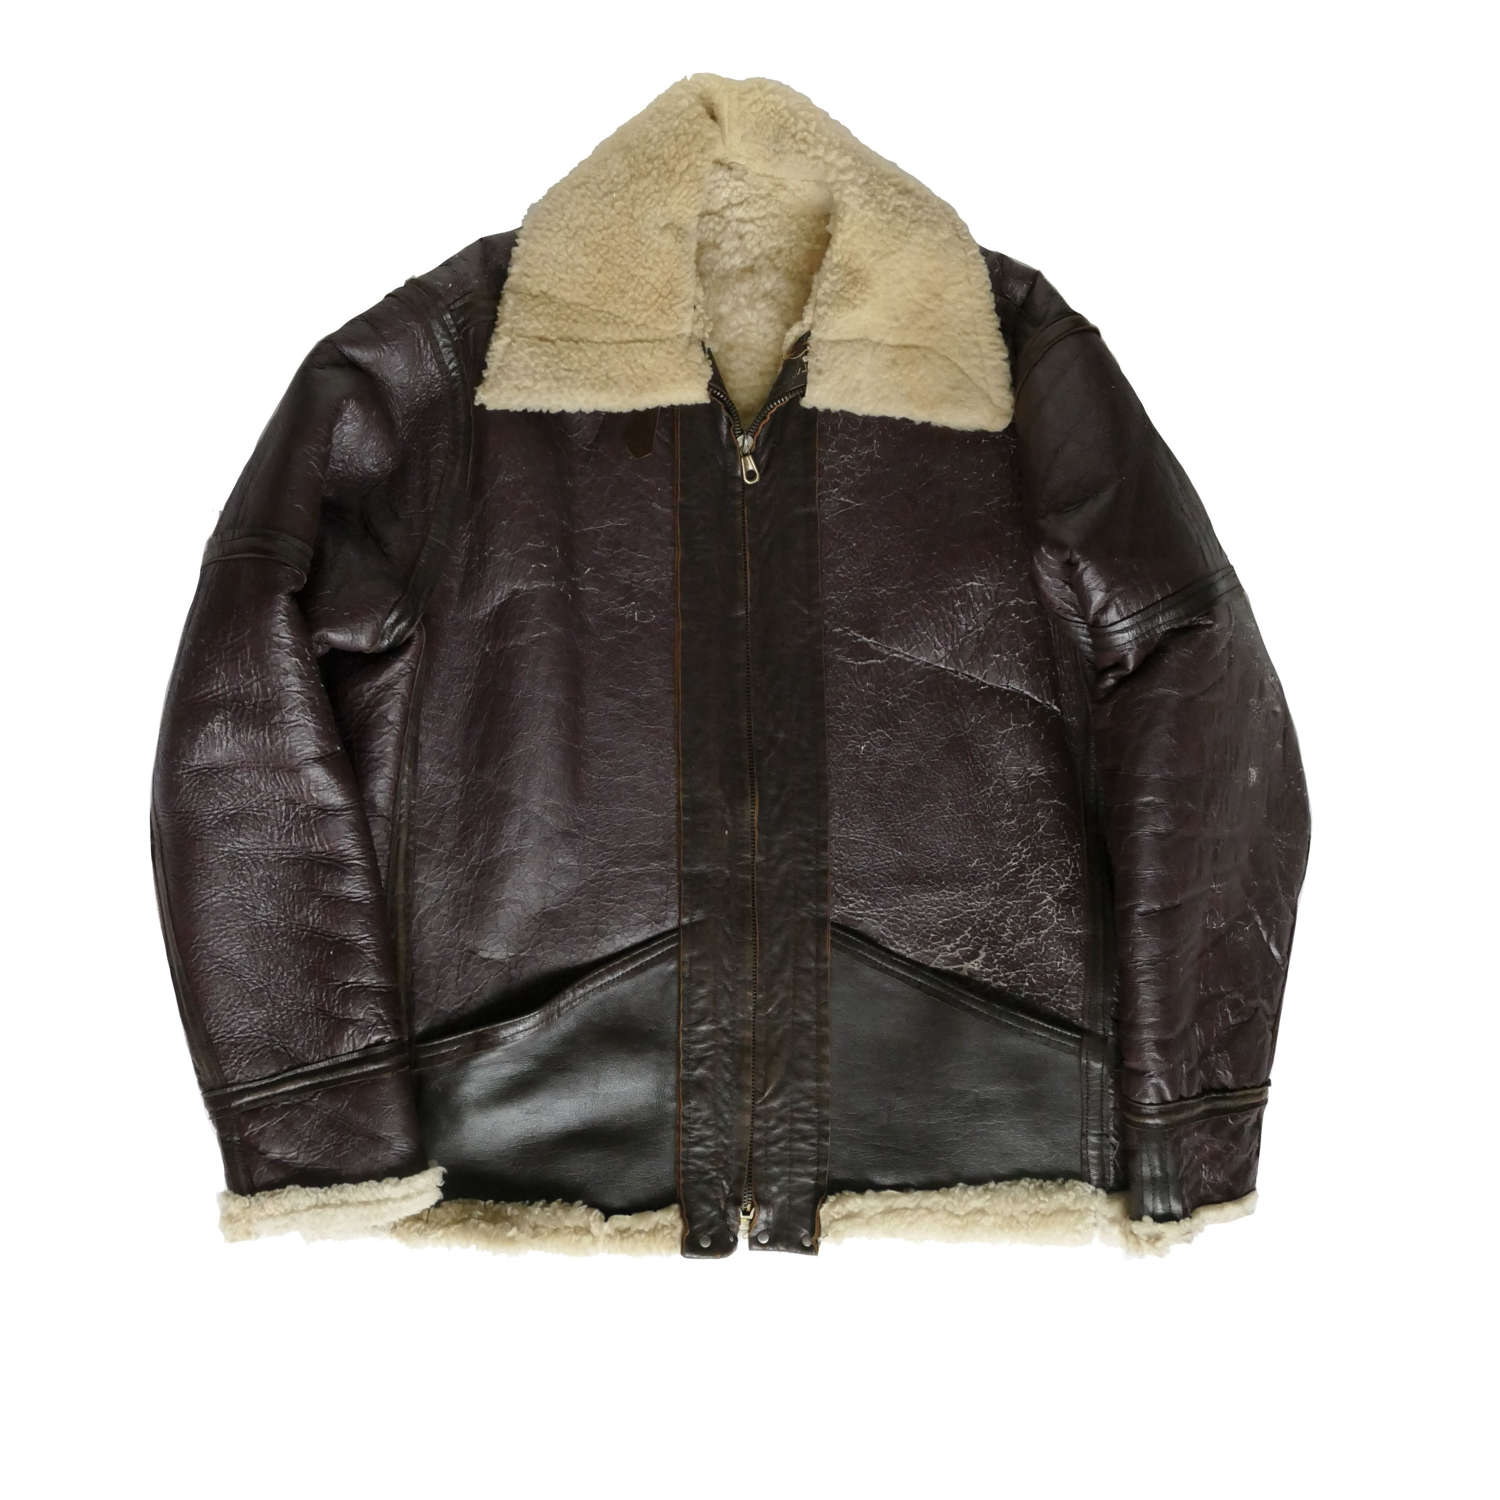 Commercial flying jacket